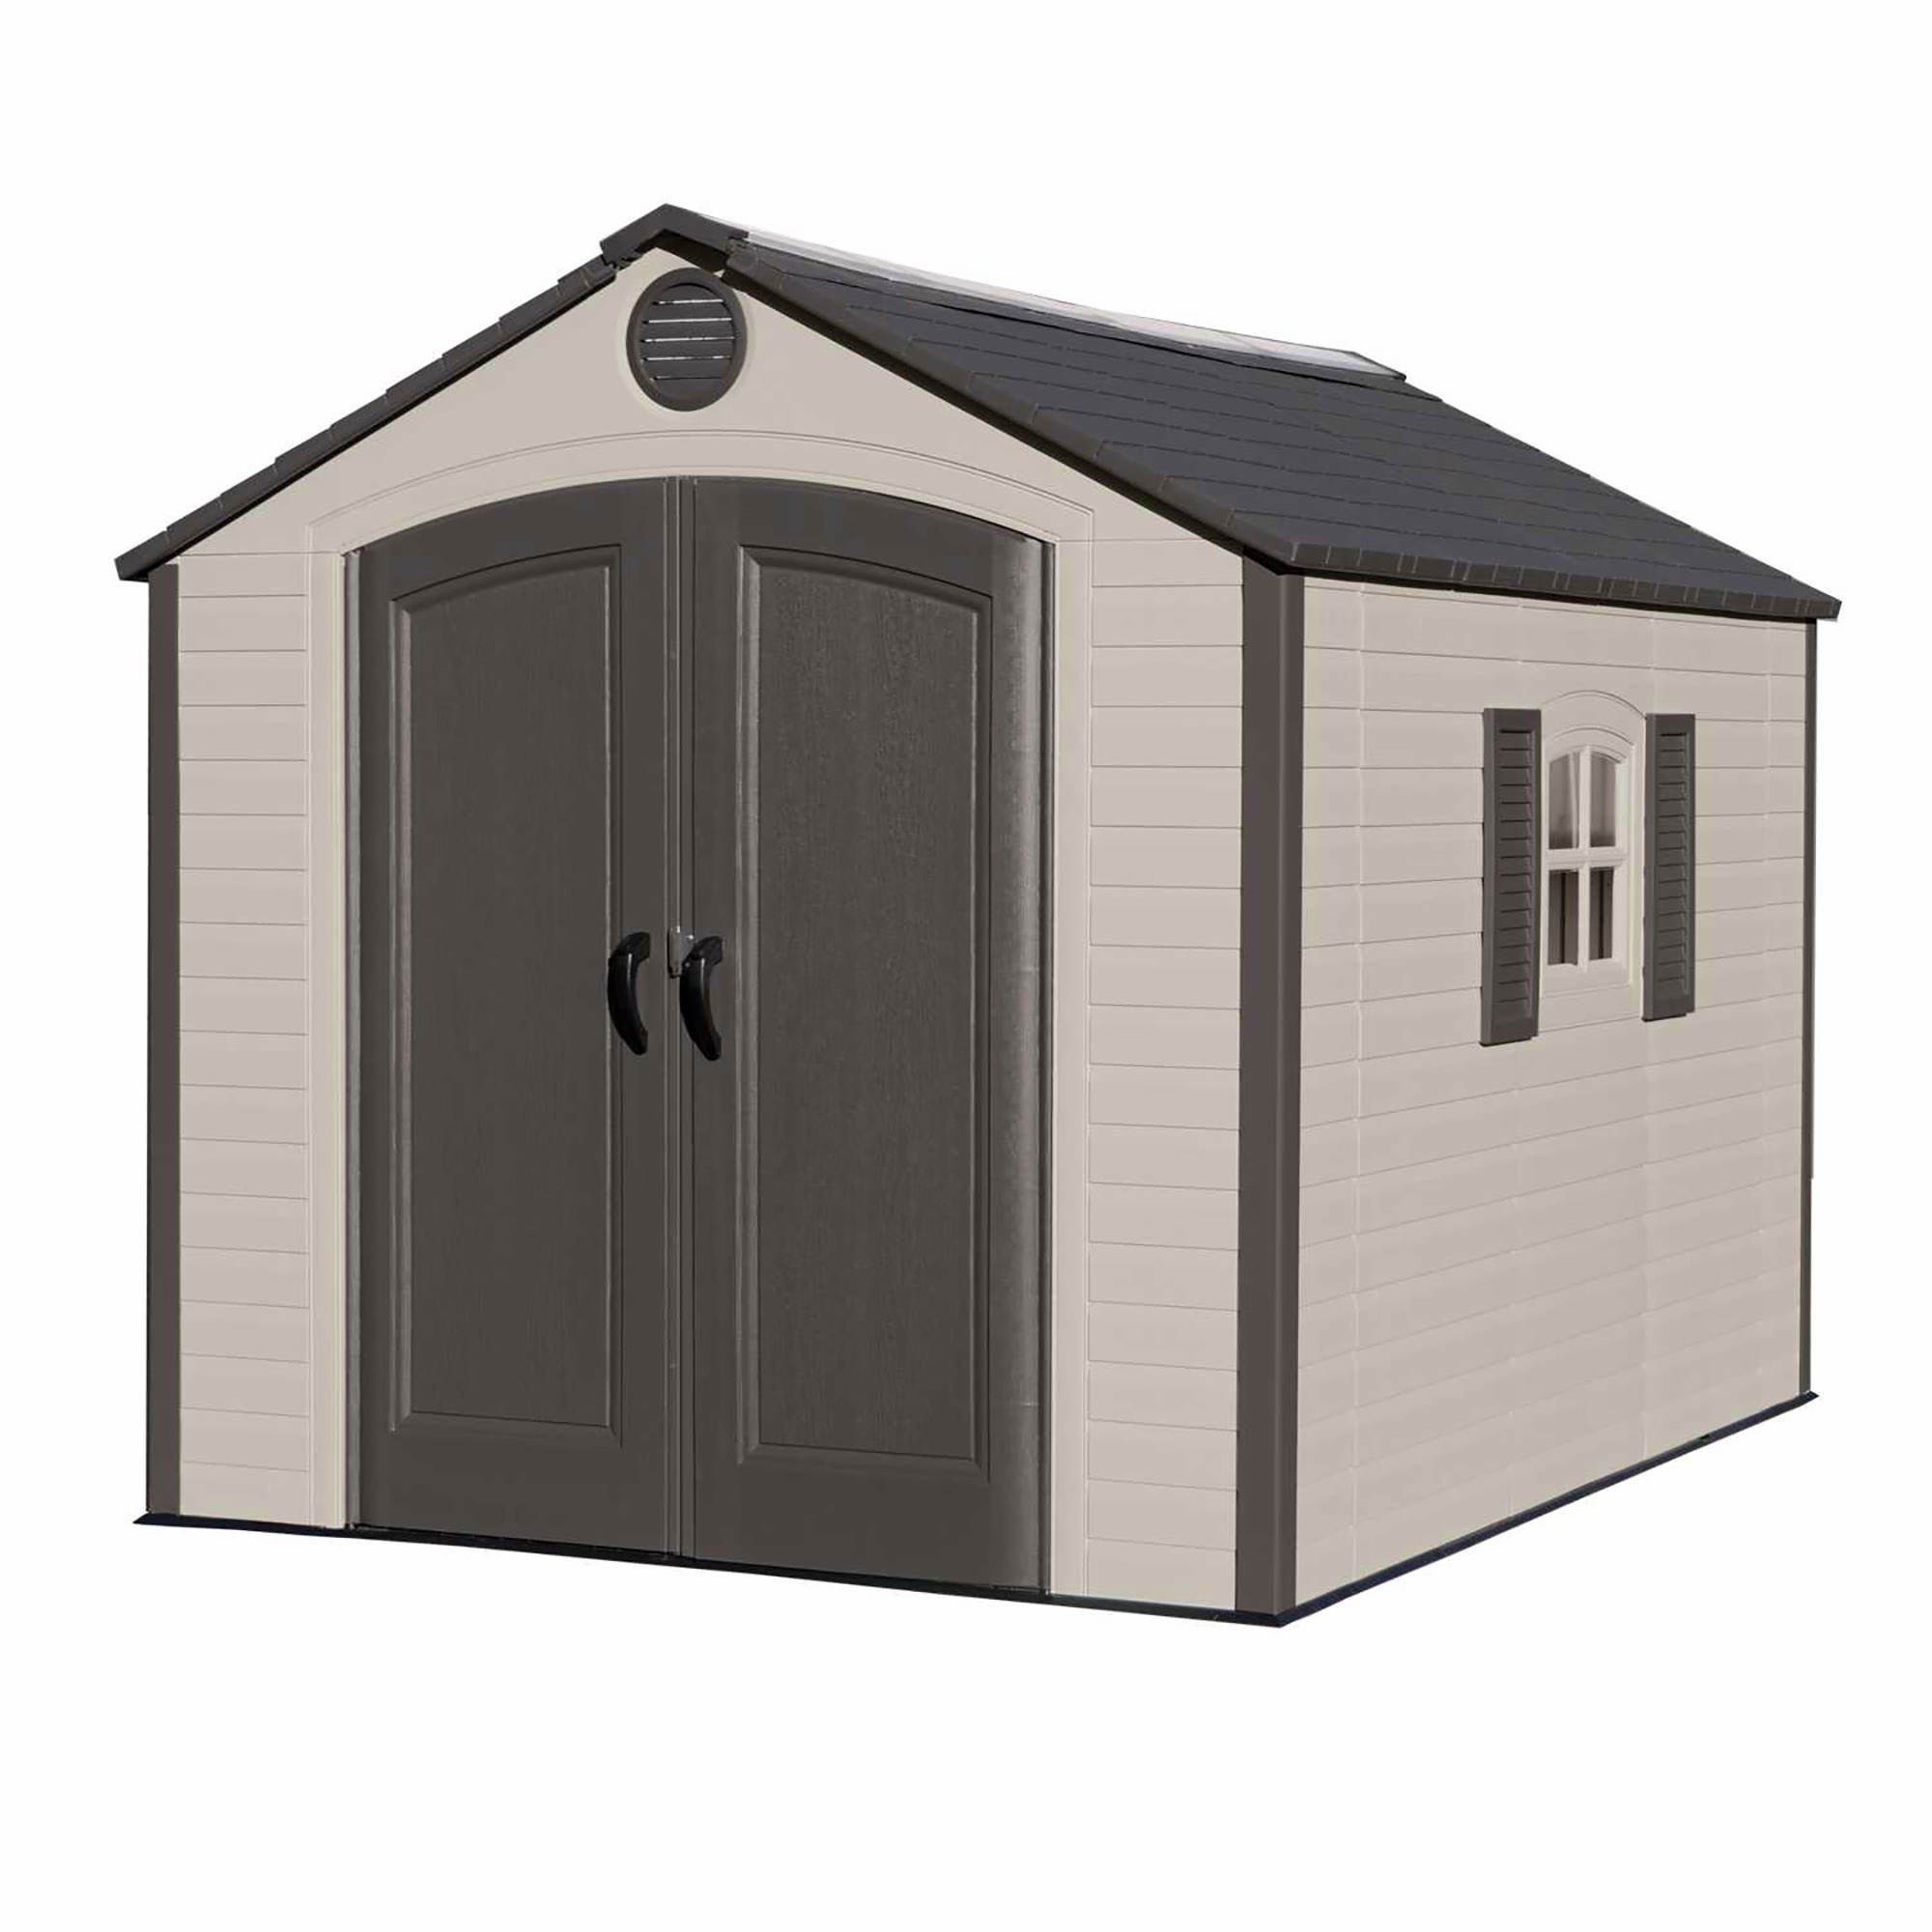 Lifetime 8' x 10' Outdoor Storage Shed - Brown/Tan - BJ's ...